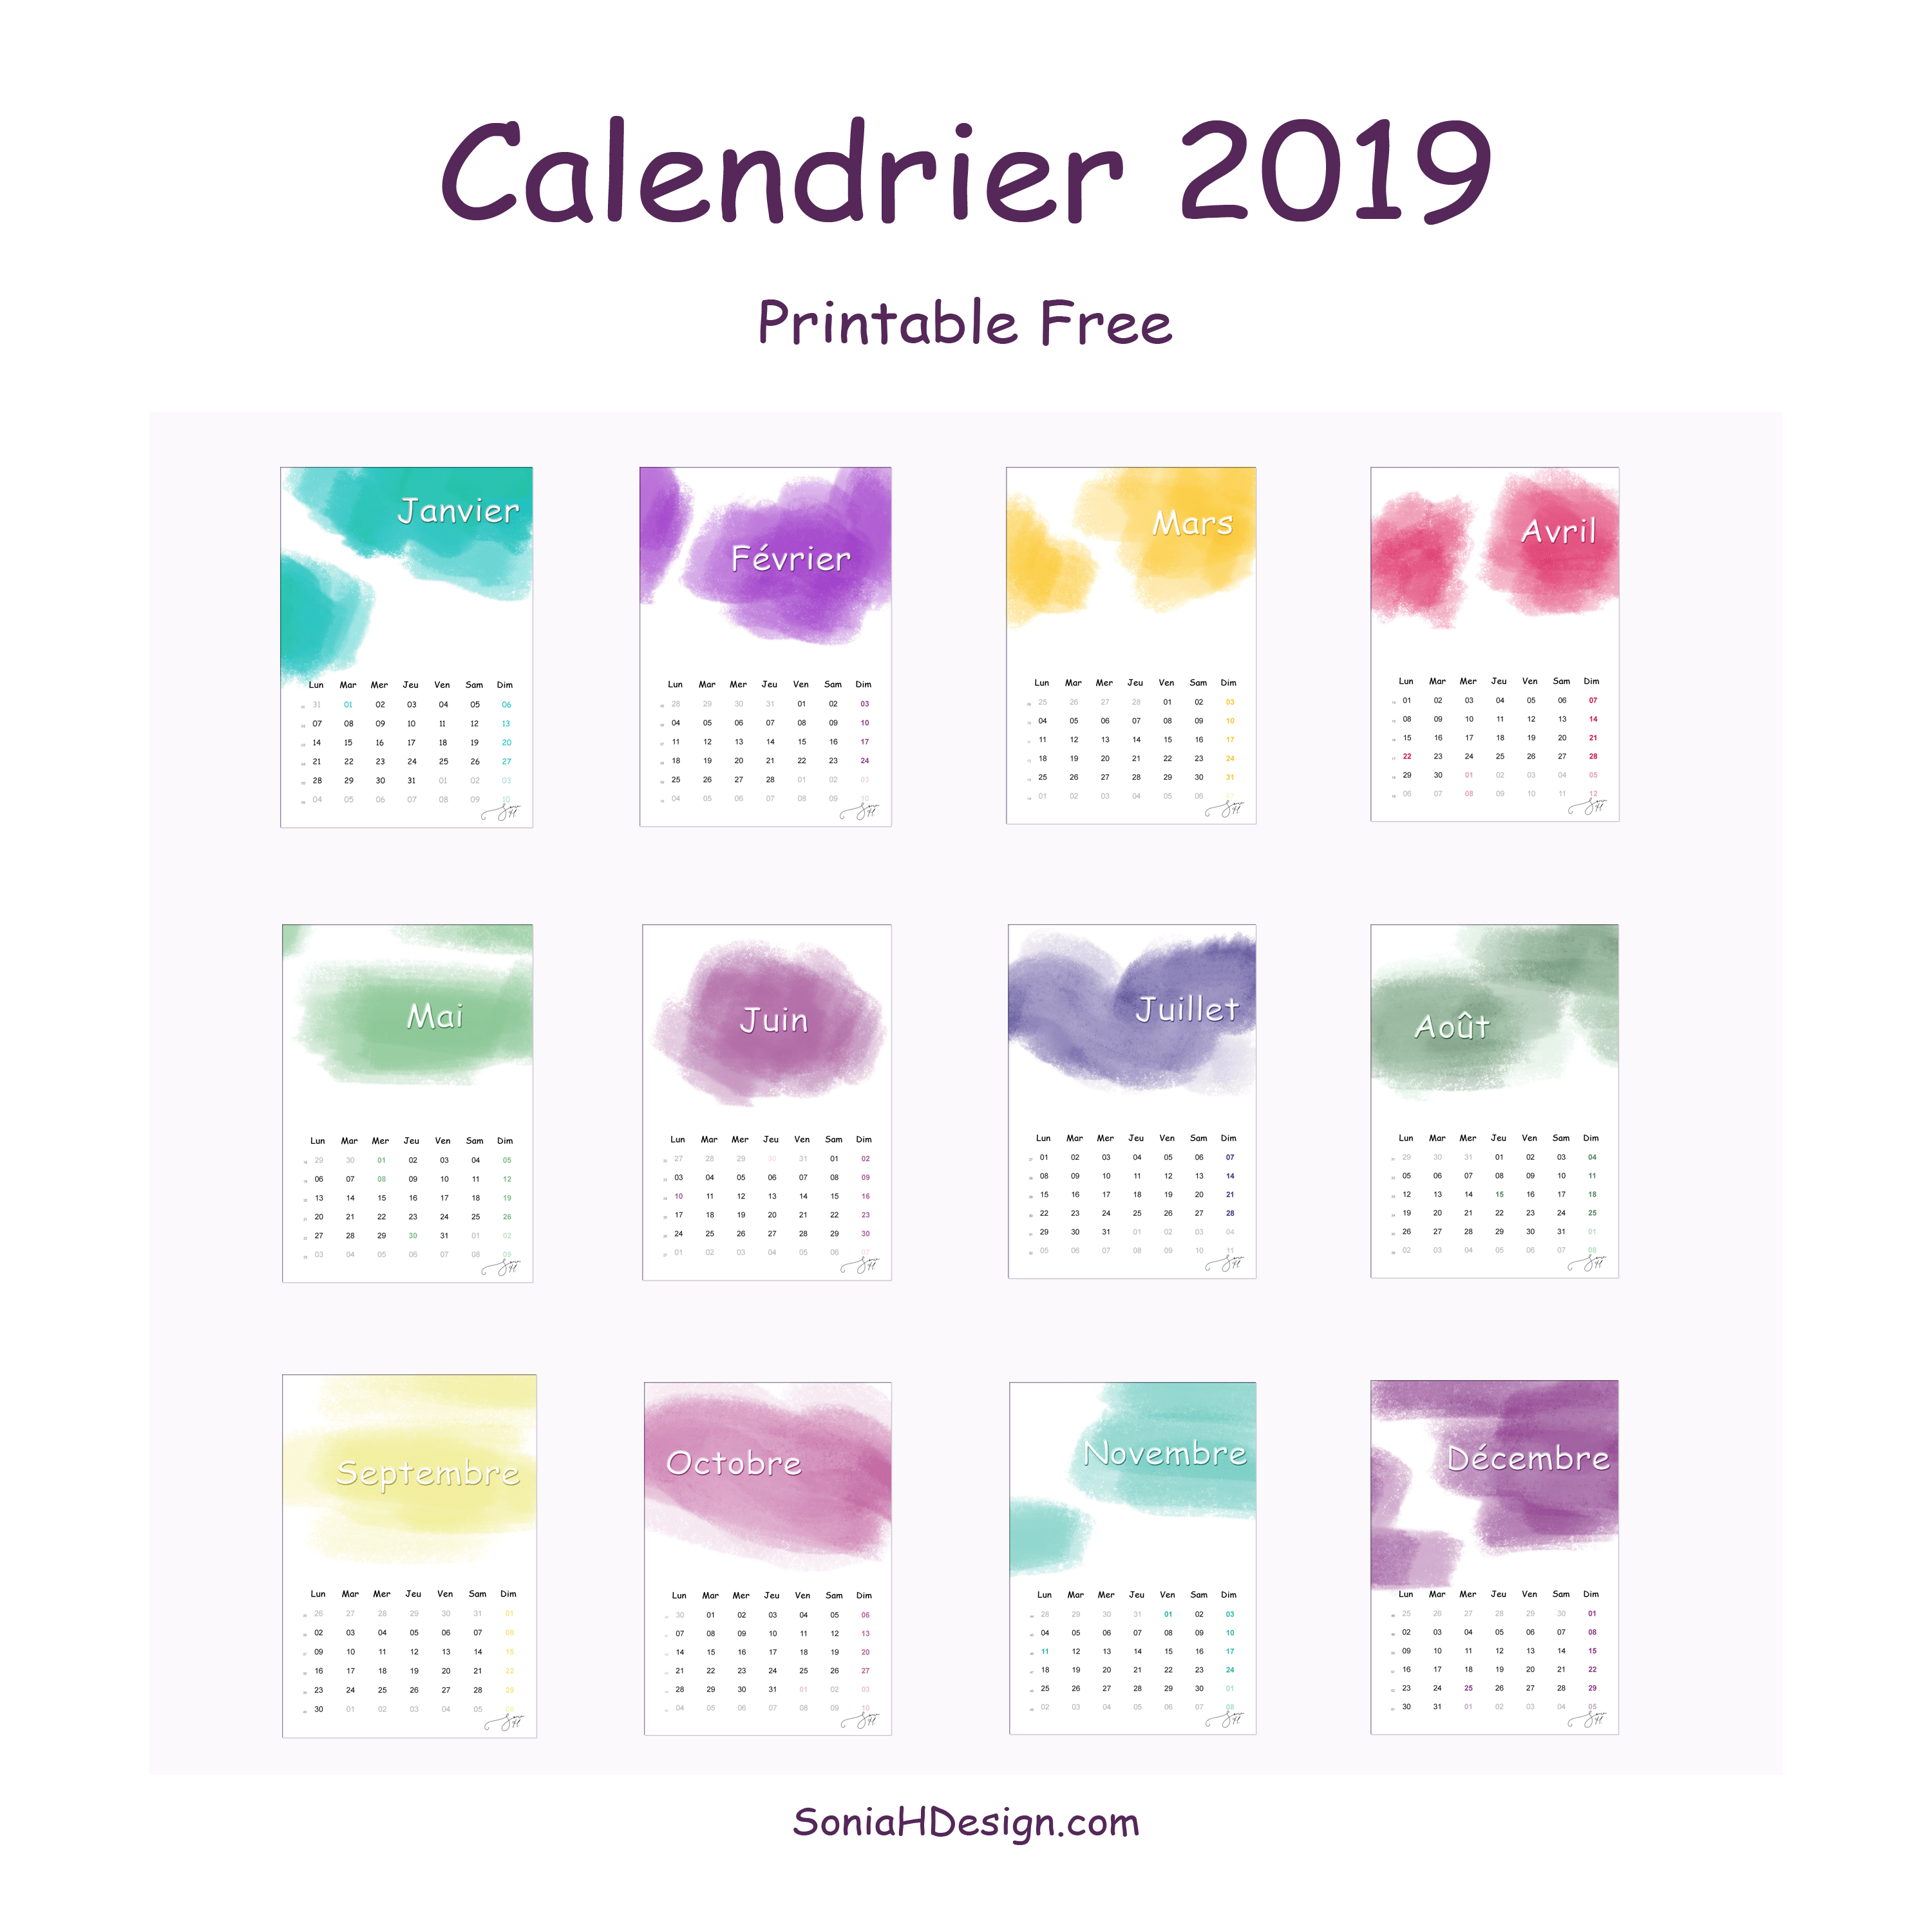 Calendrier Watercolor 2019 (Free Printable)